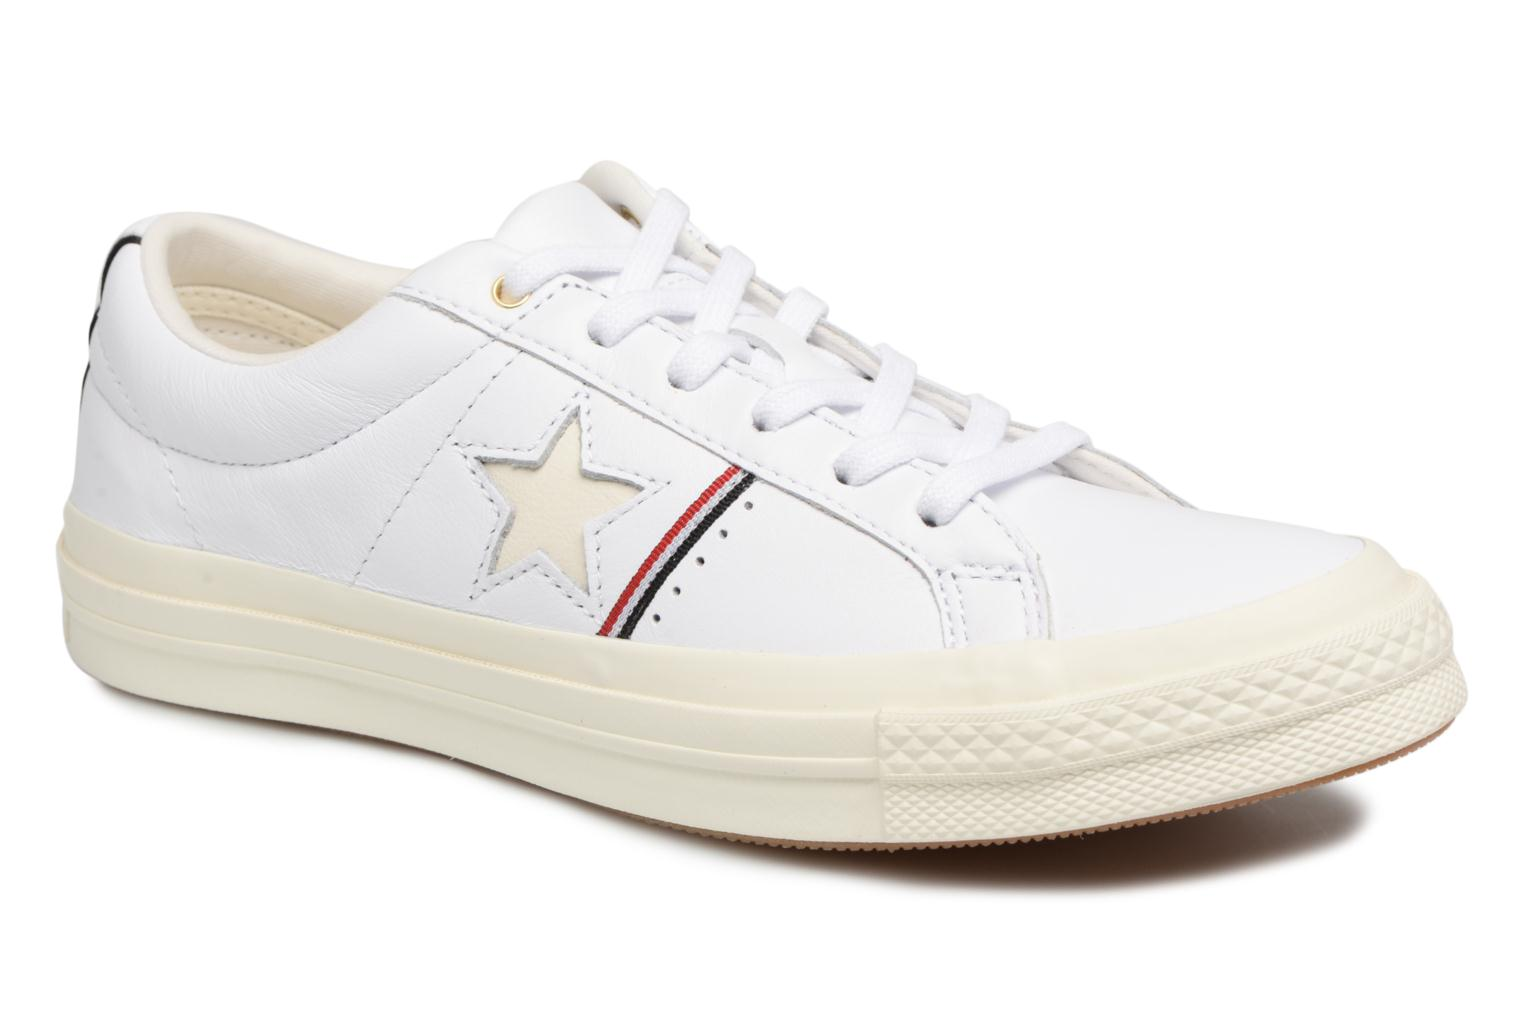 ZapatosConverse One Star Piping Pack Pack Pack Ox W (Blanco) - Deportivas   Zapatos casuales salvajes 88912e